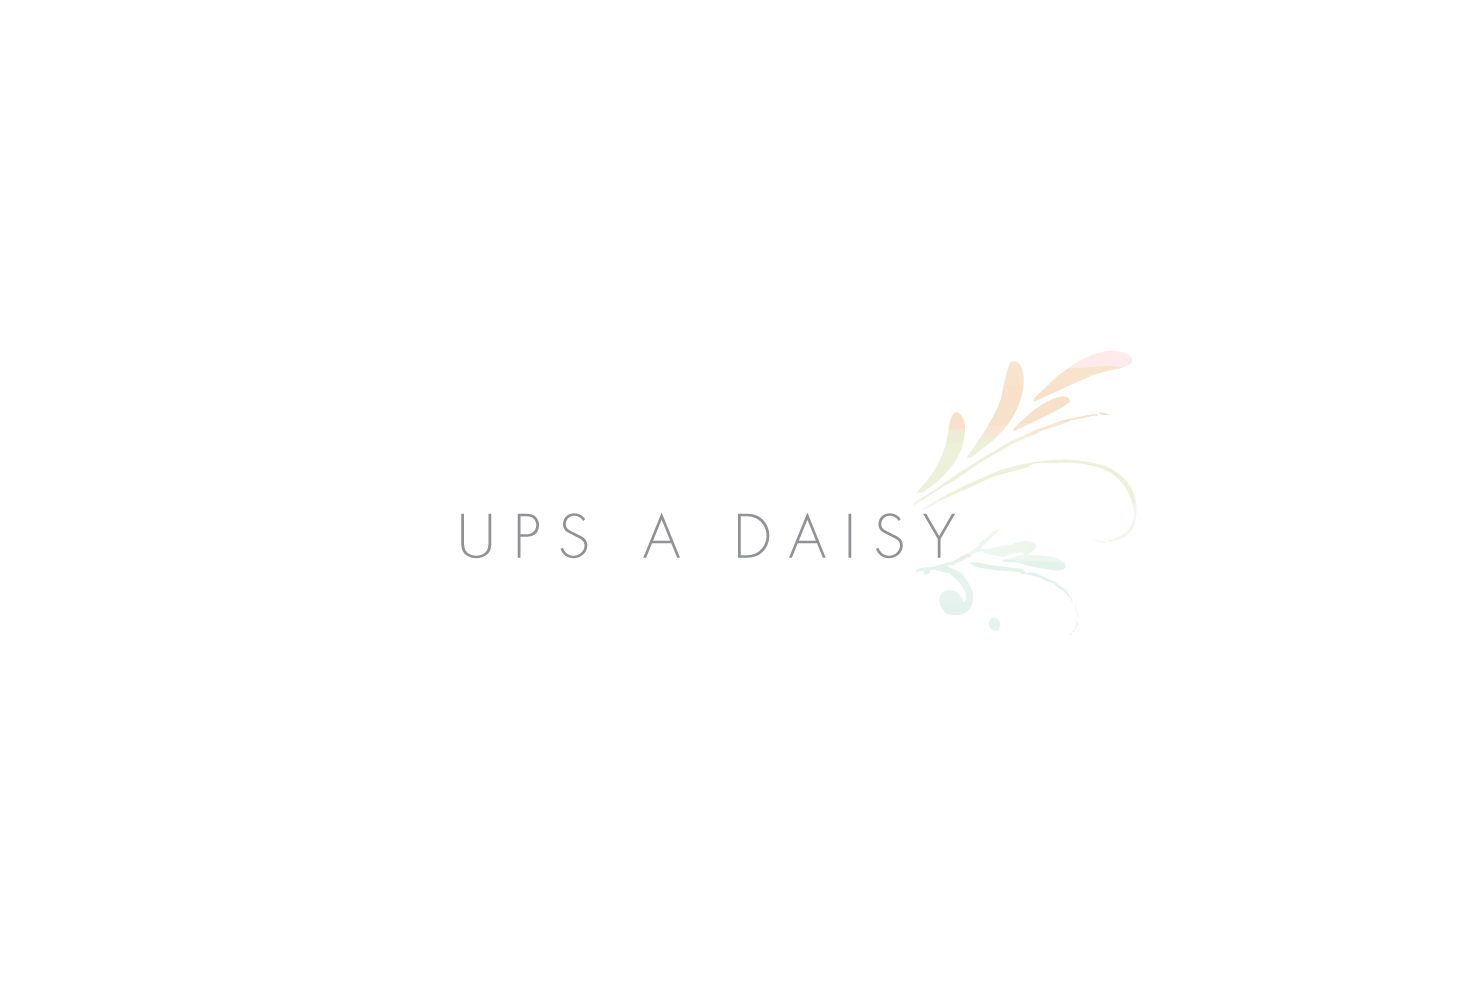 New logo wanted for Ups A Daisy